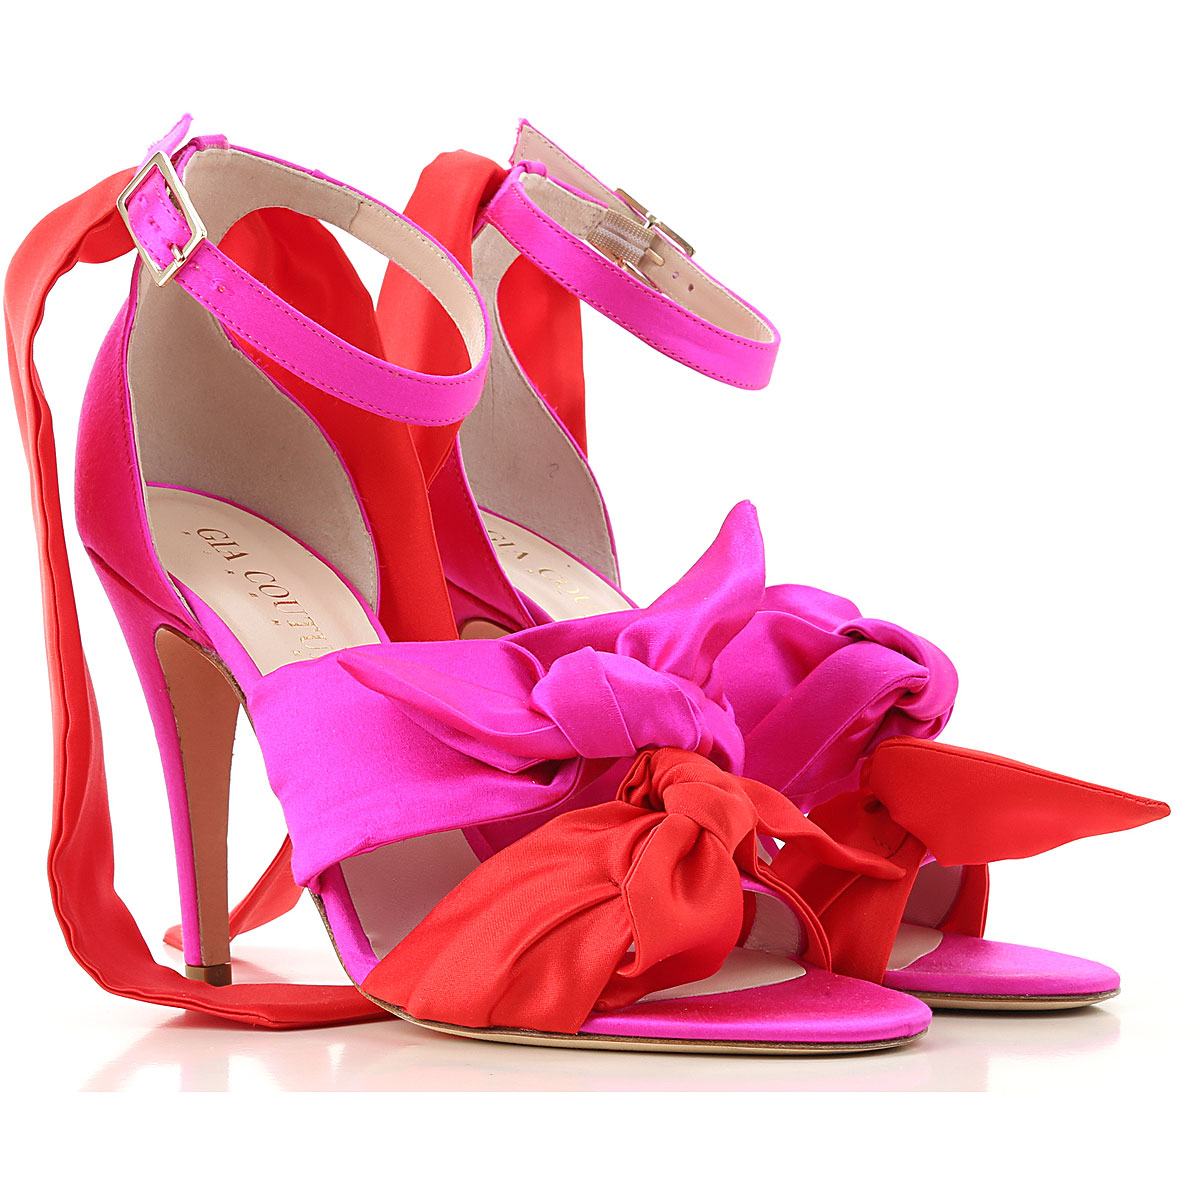 Gia Couture Womens Shoes On Sale in Outlet, Fuchsia, satin, 2019, 6 8 9